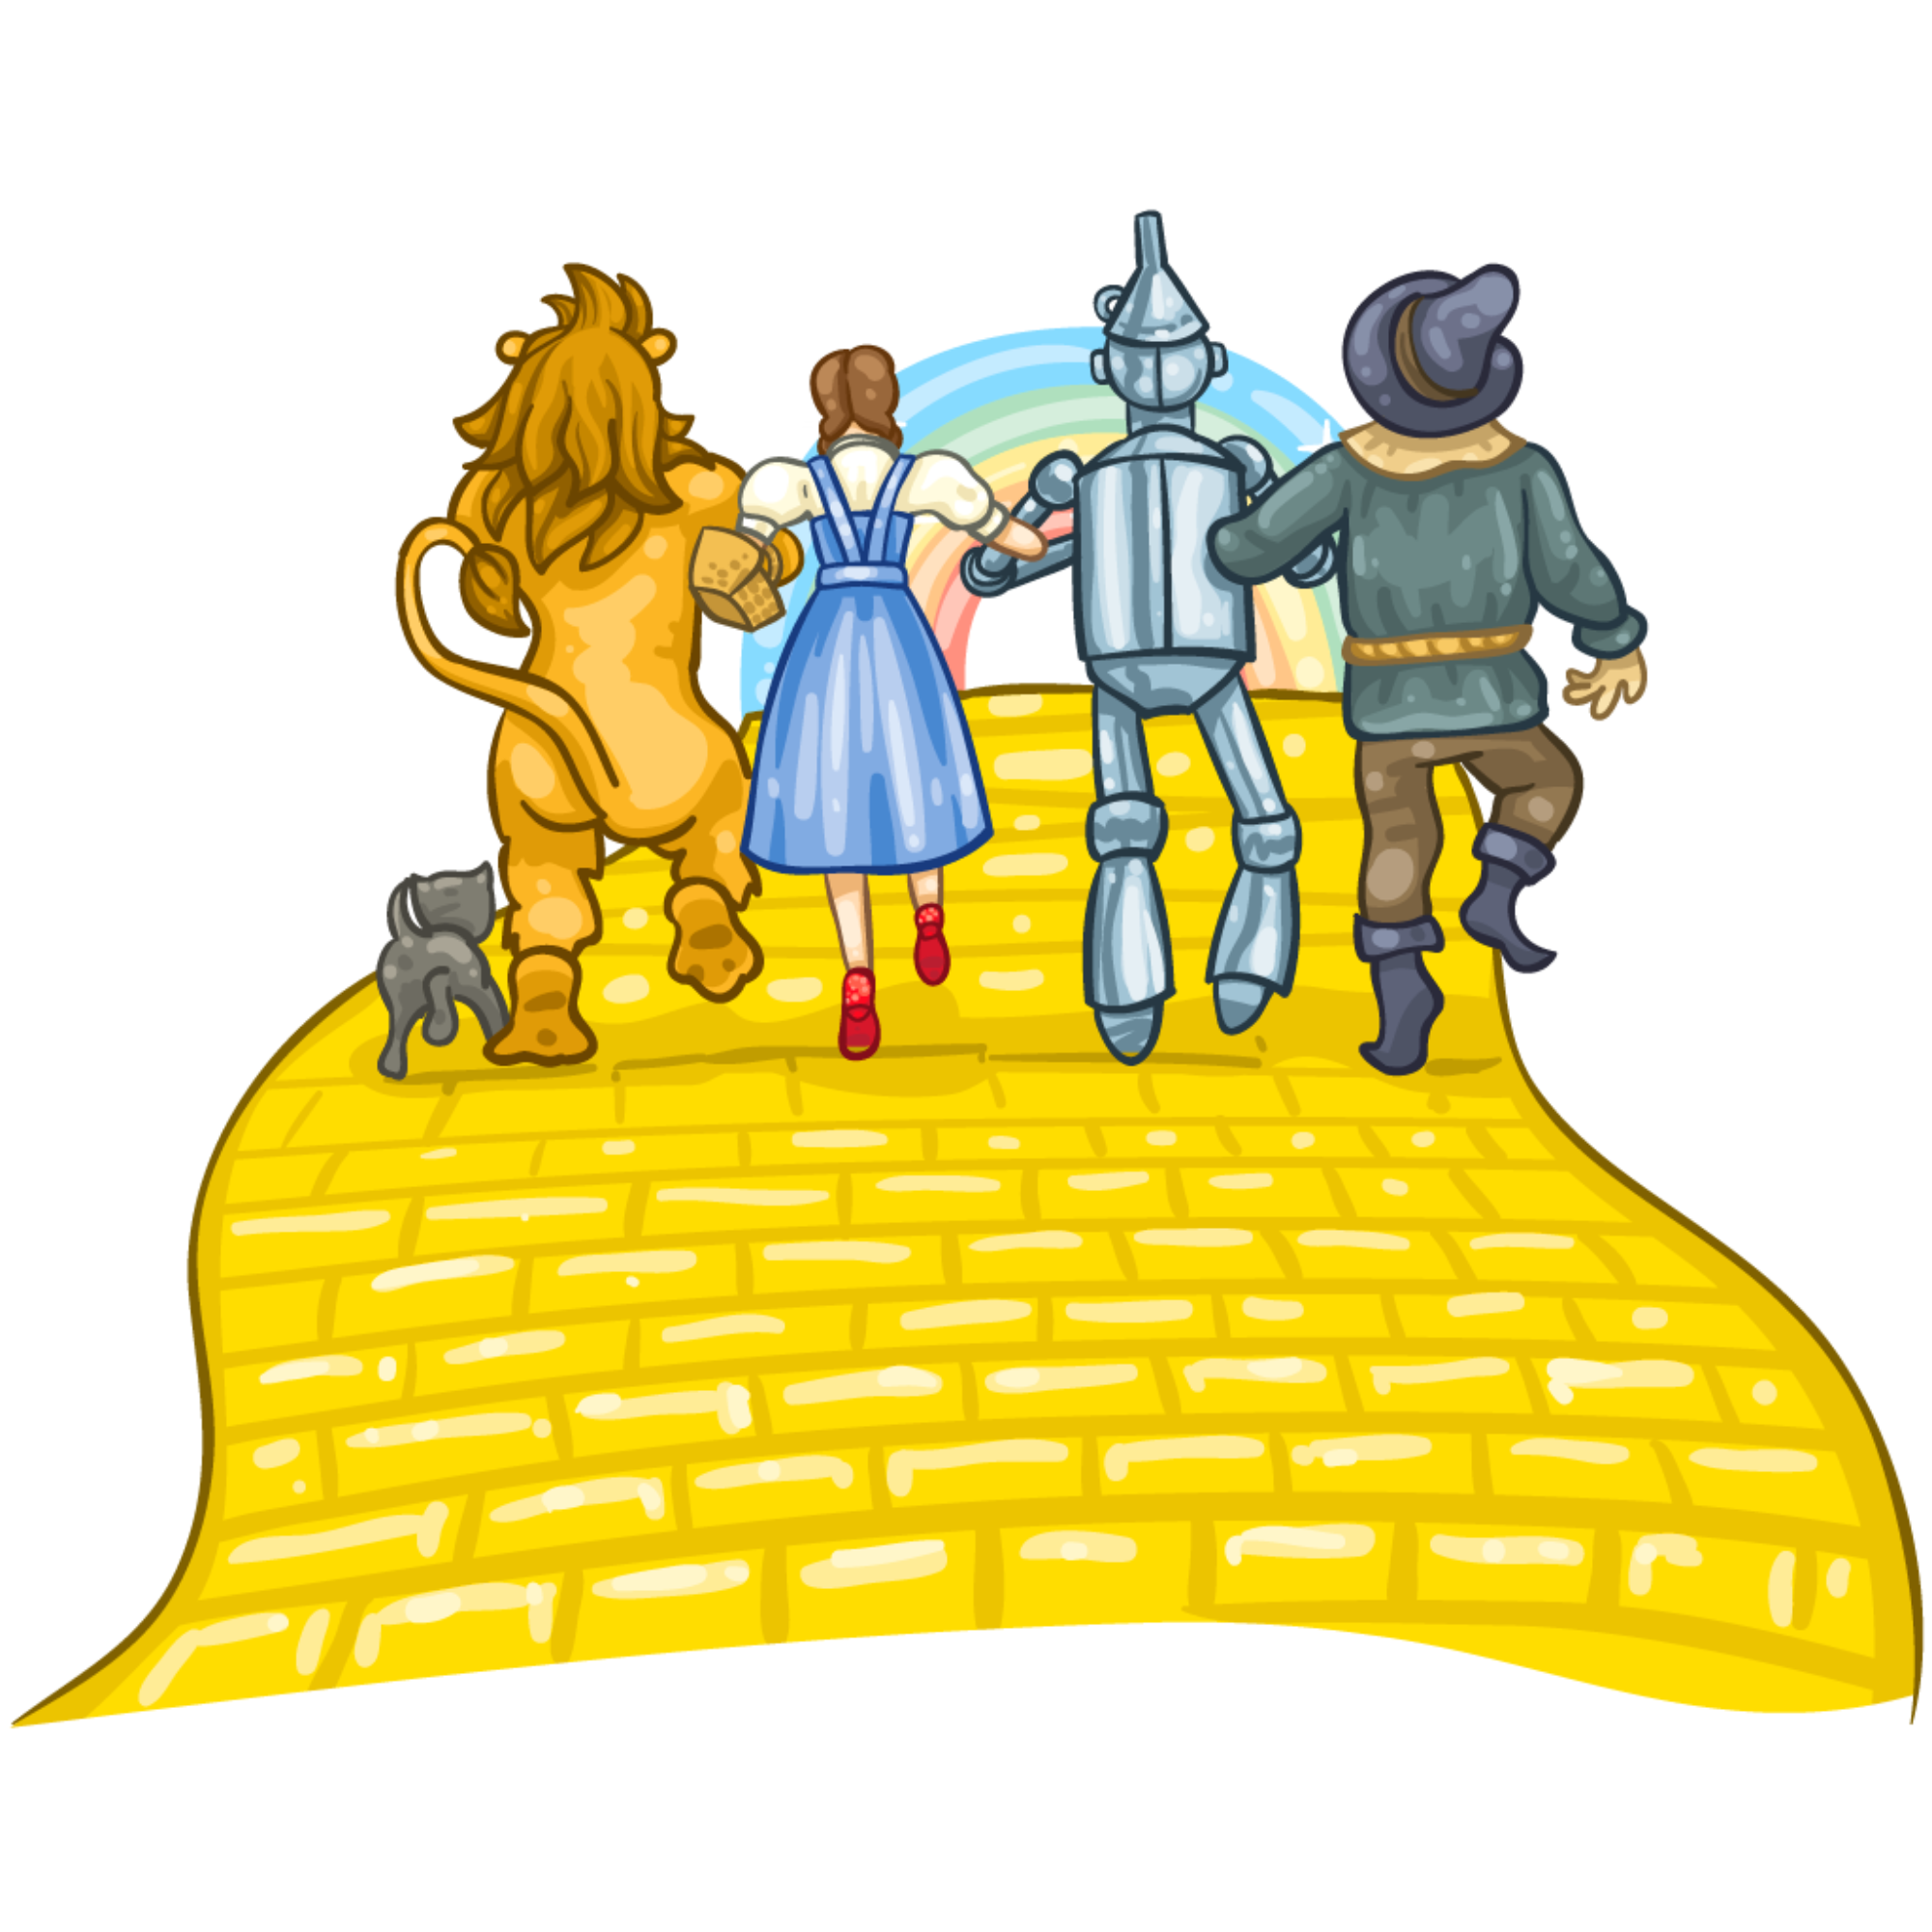 Wizard of oz clipart cartoon graphic freeuse library Wizard Of Oz Clipart Yellow Brick Road | Free download best Wizard ... graphic freeuse library